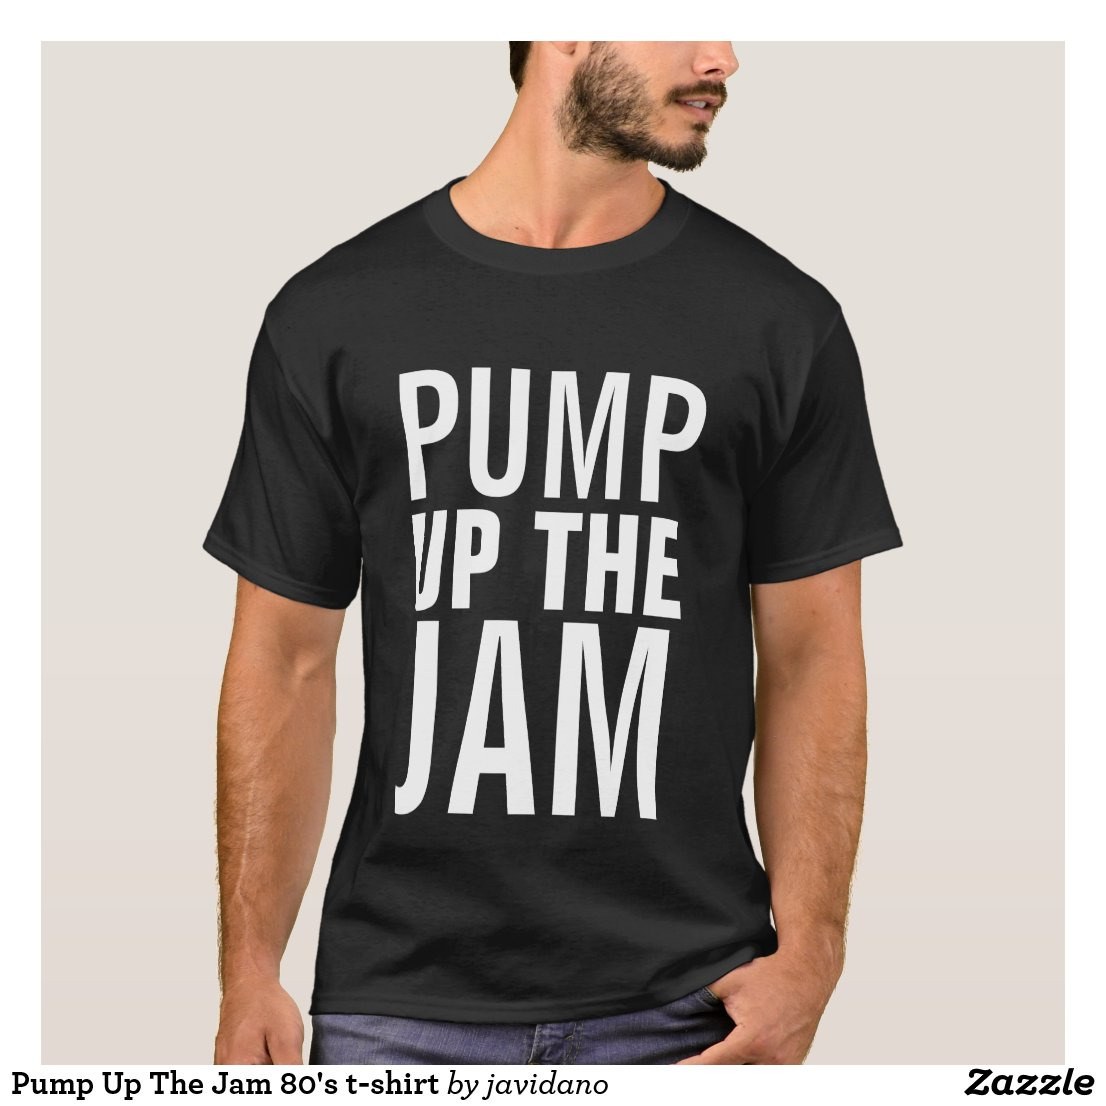 Pump Up The Jam t-shirt